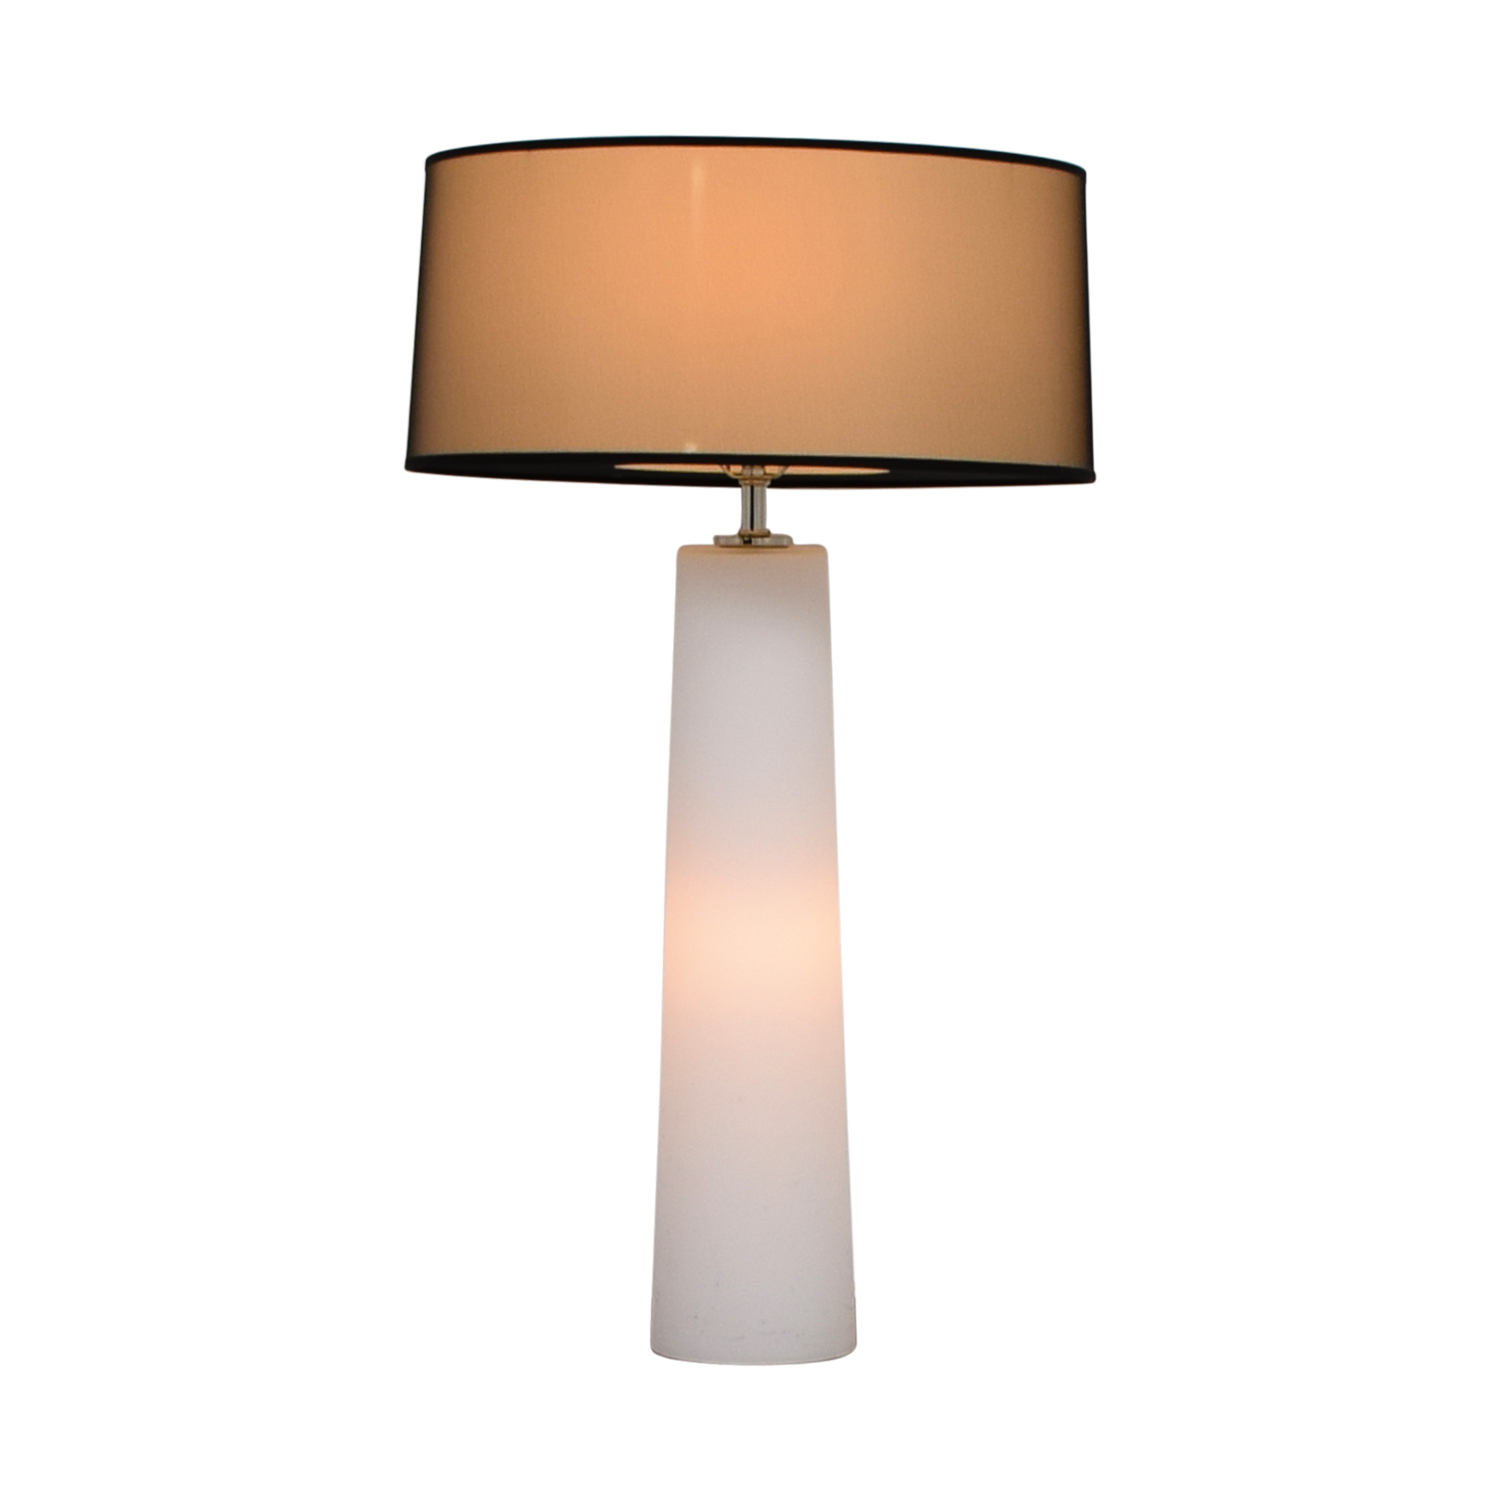 White Bedside Lamp with Base and Top Lighting / Lamps